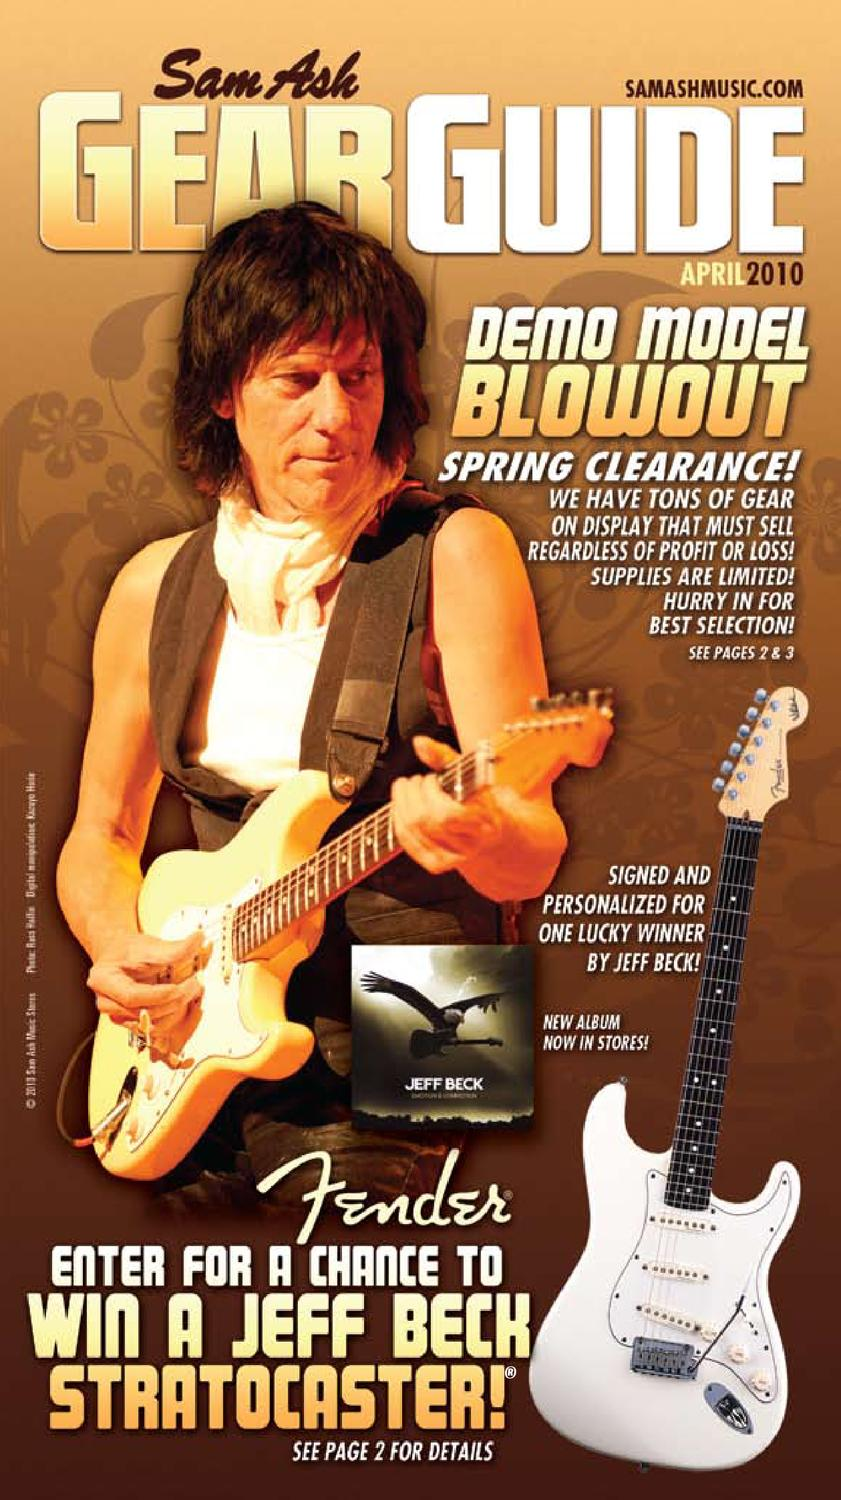 April 2010 Sam Ash Gear Guide By Music Corp Issuu Free Download S570b Wiring Diagram